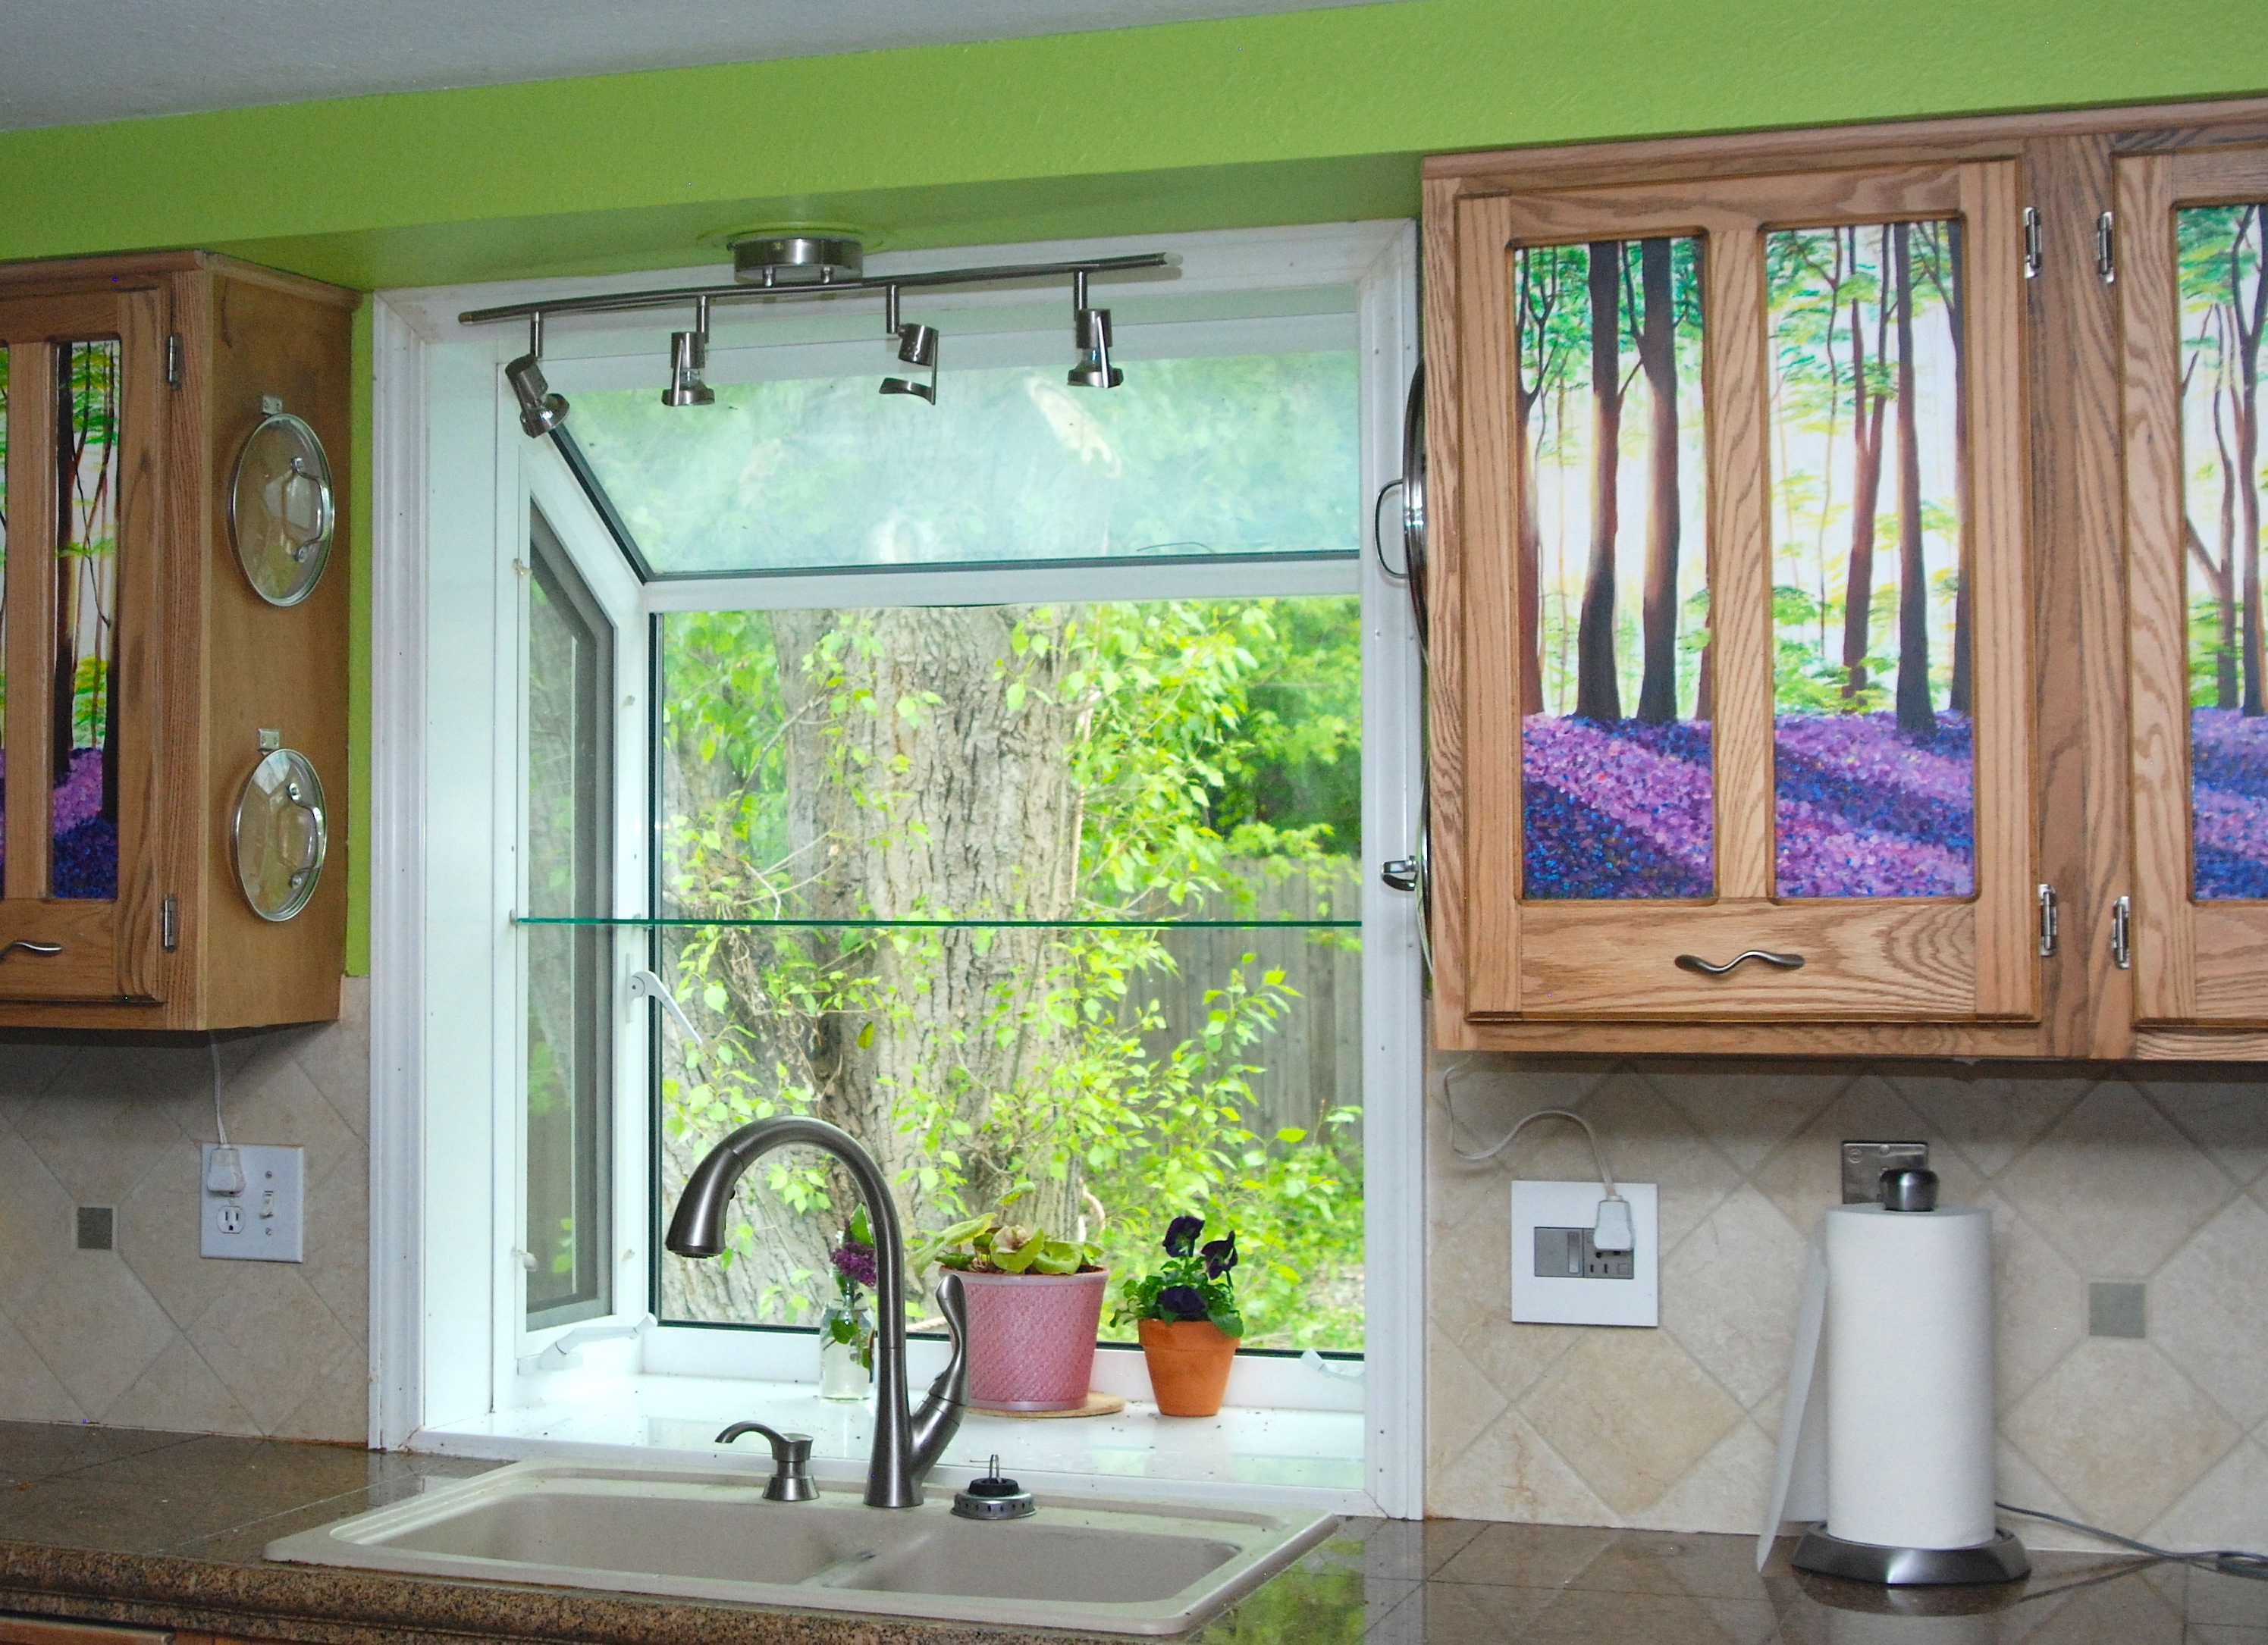 Imagine a forest in your kitchen